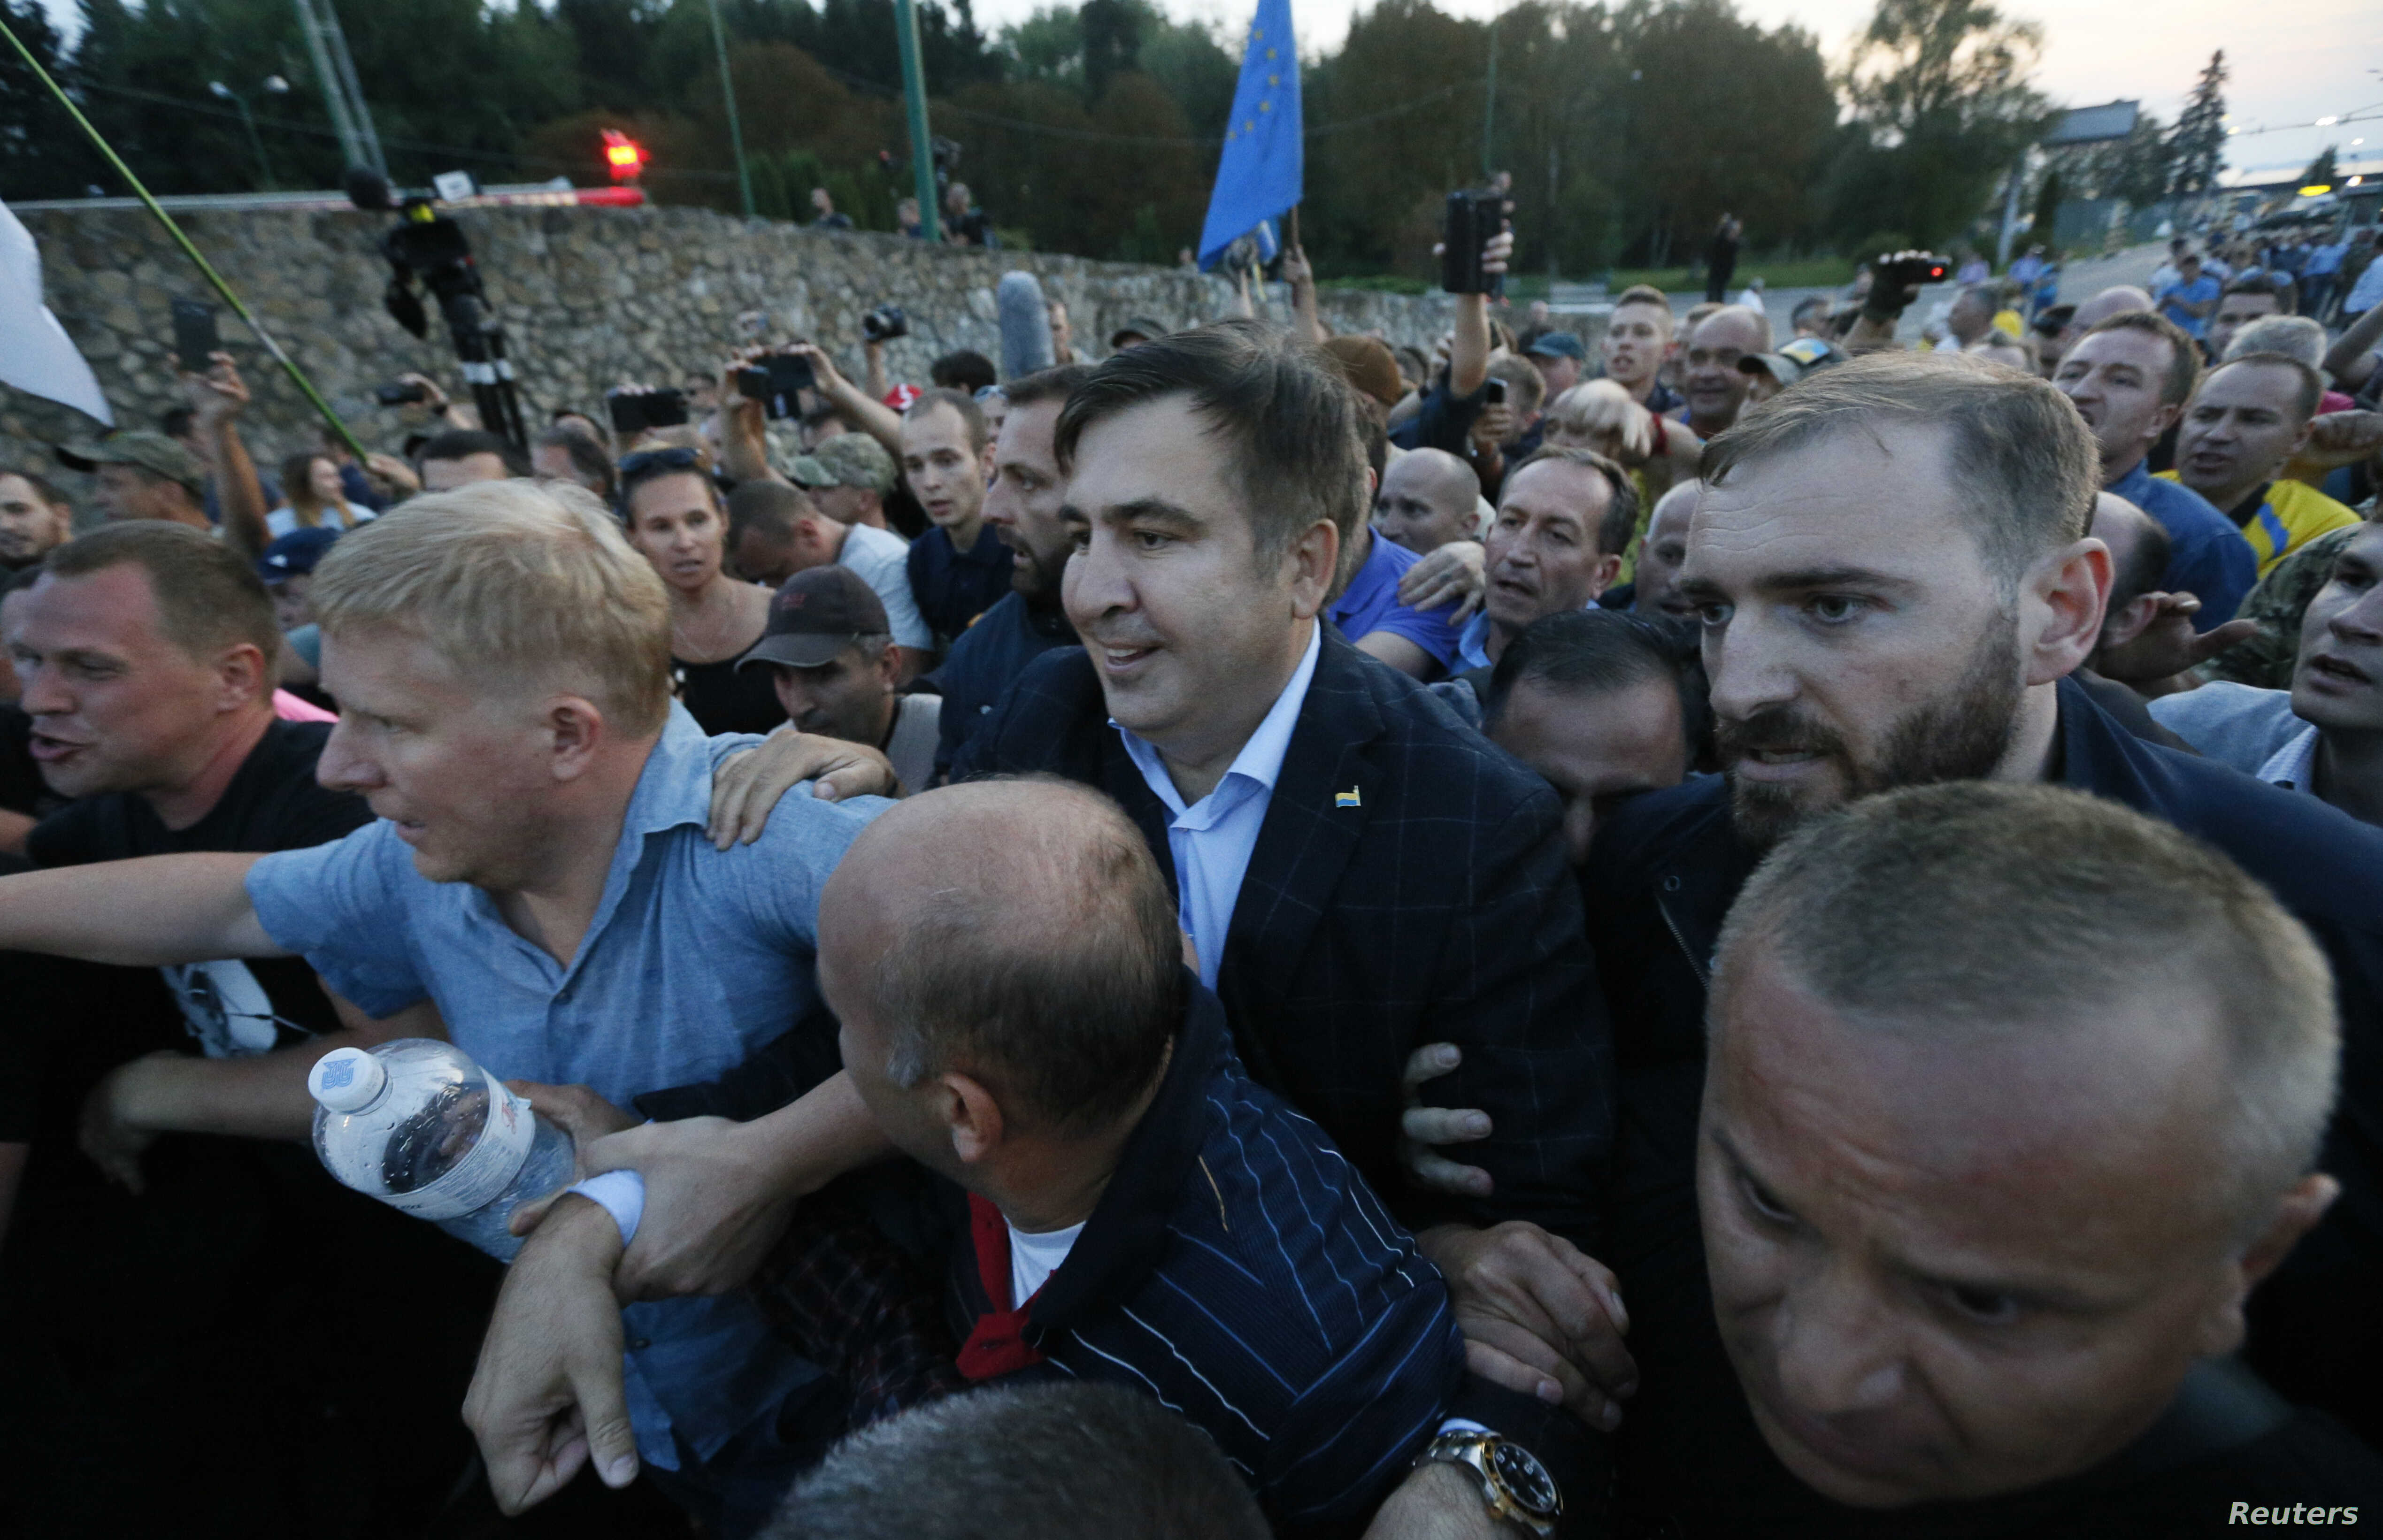 Former Georgian President Mikheil Saakashvili is surrounded by his supporters as he arrives at a checkpoint on the Ukrainian-Polish border in Shehyni, Ukraine, Sept. 10, 2017.